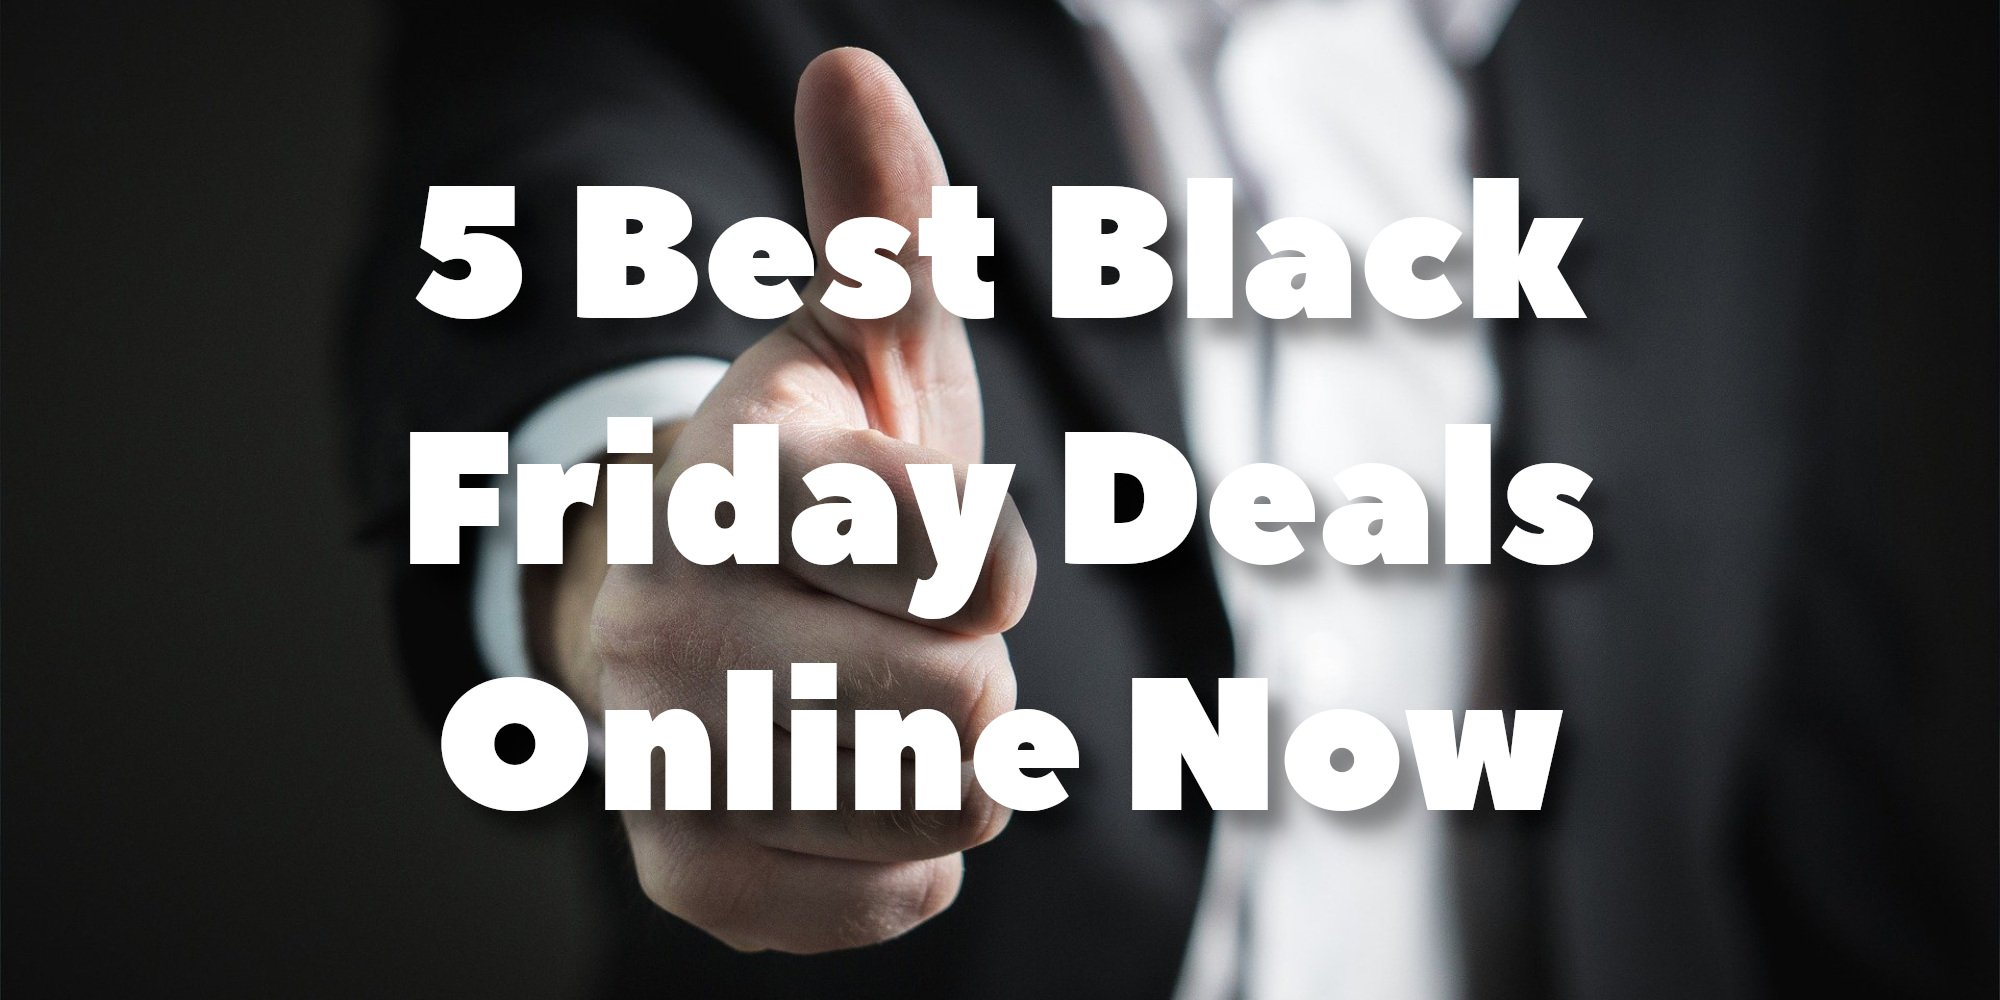 5 Best Black Friday Deals Online Now